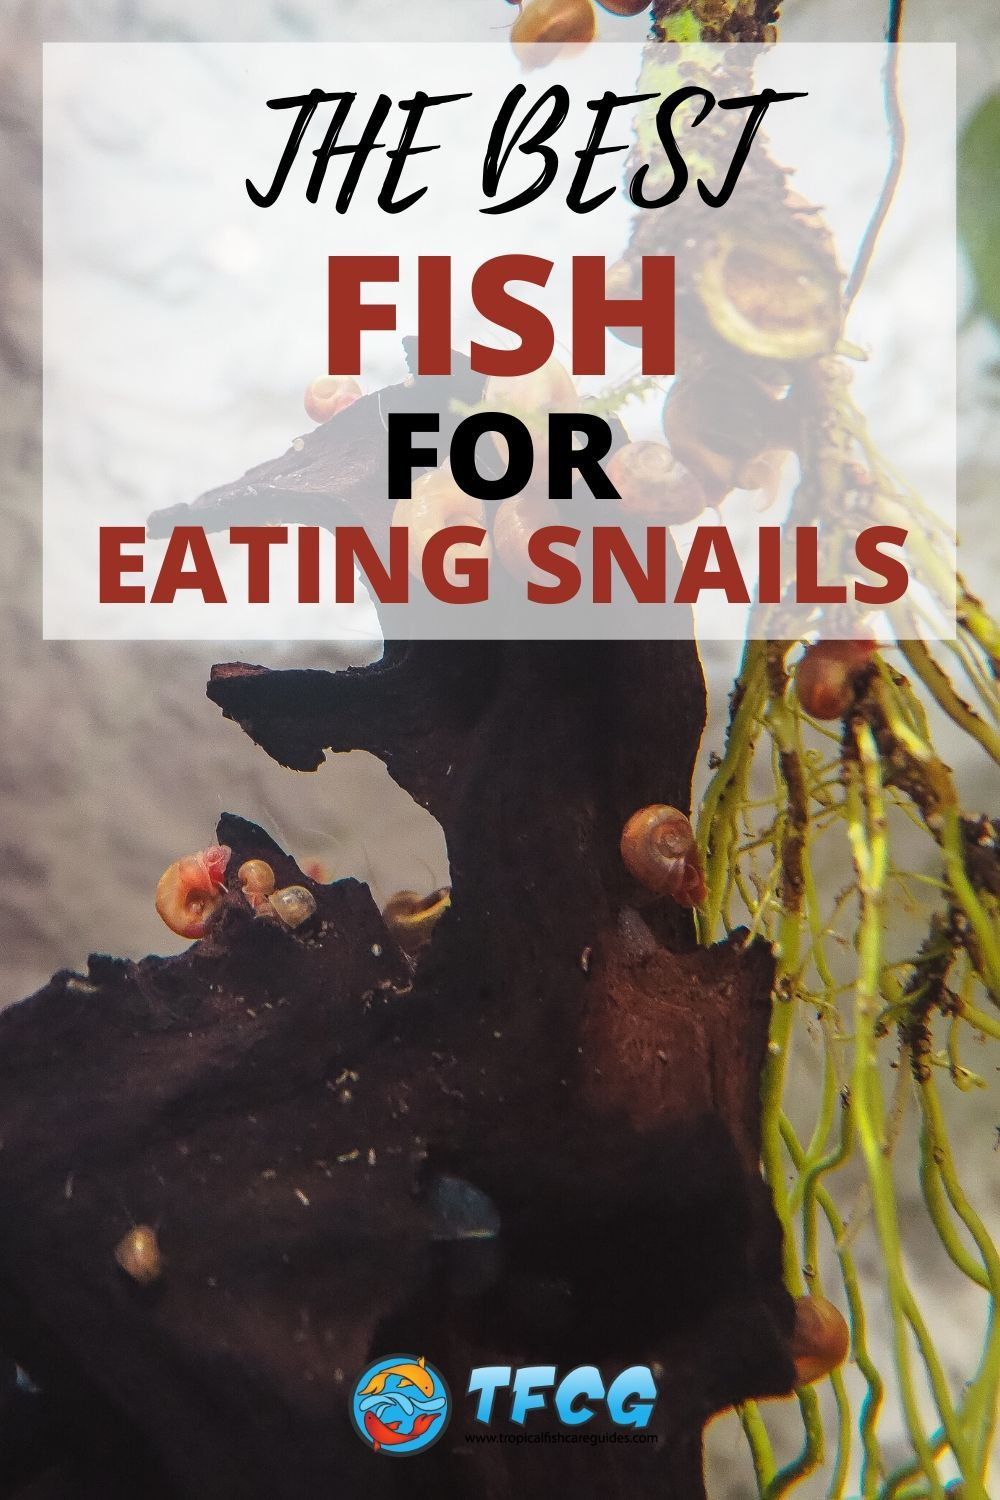 The Best Fish For Eating Snails